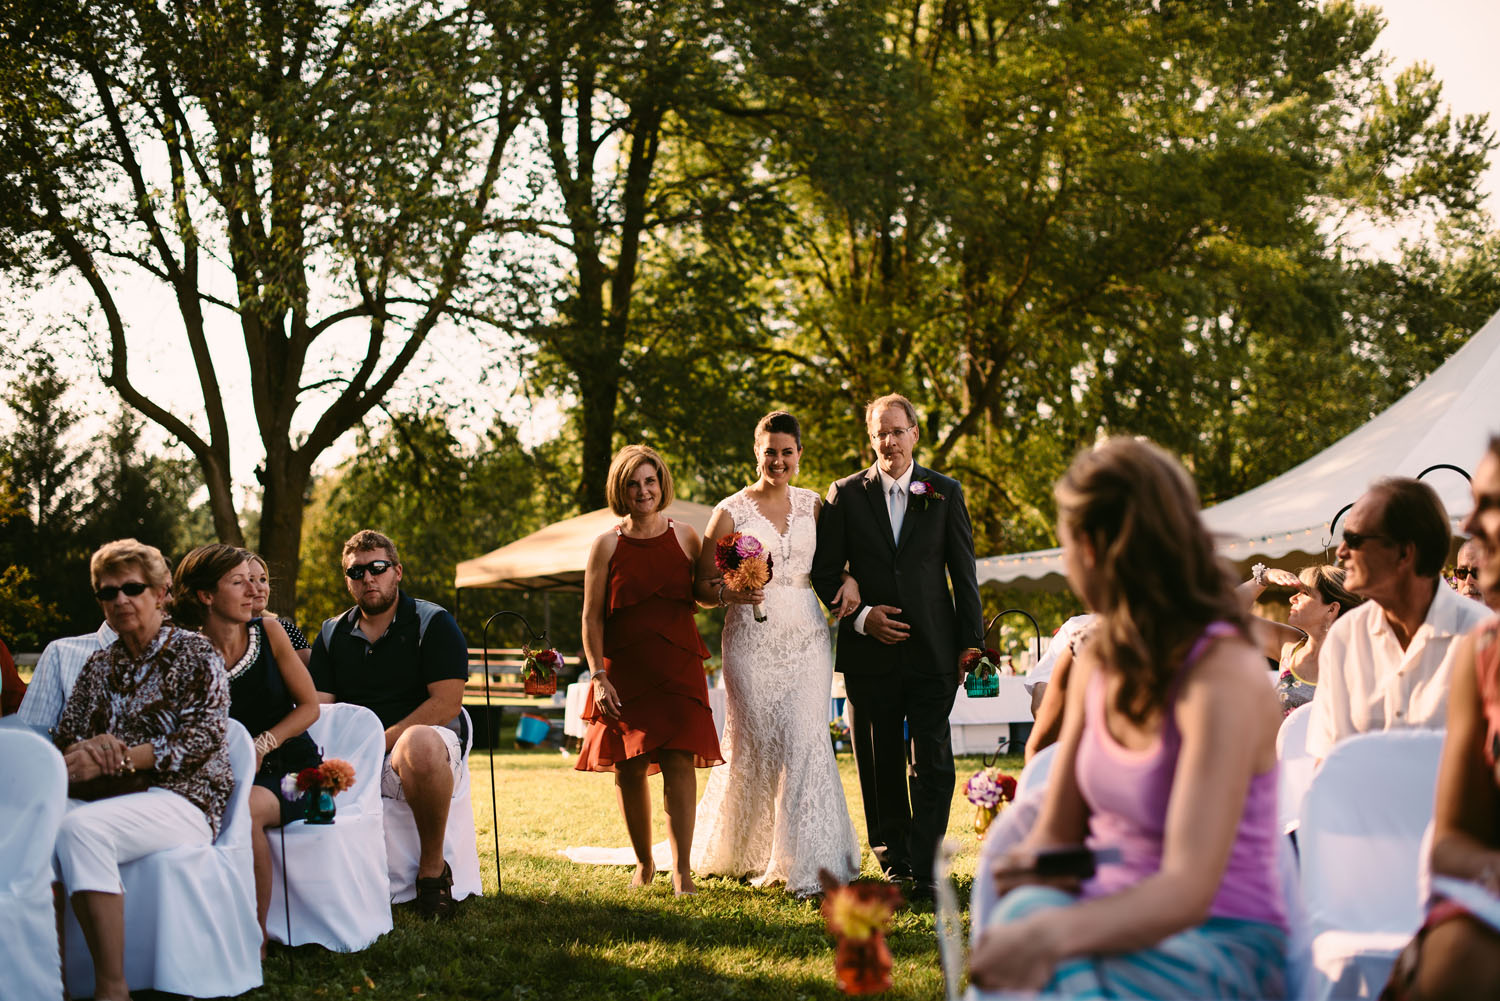 backyard-wedding-minnesota-wedding-photographer.jpg